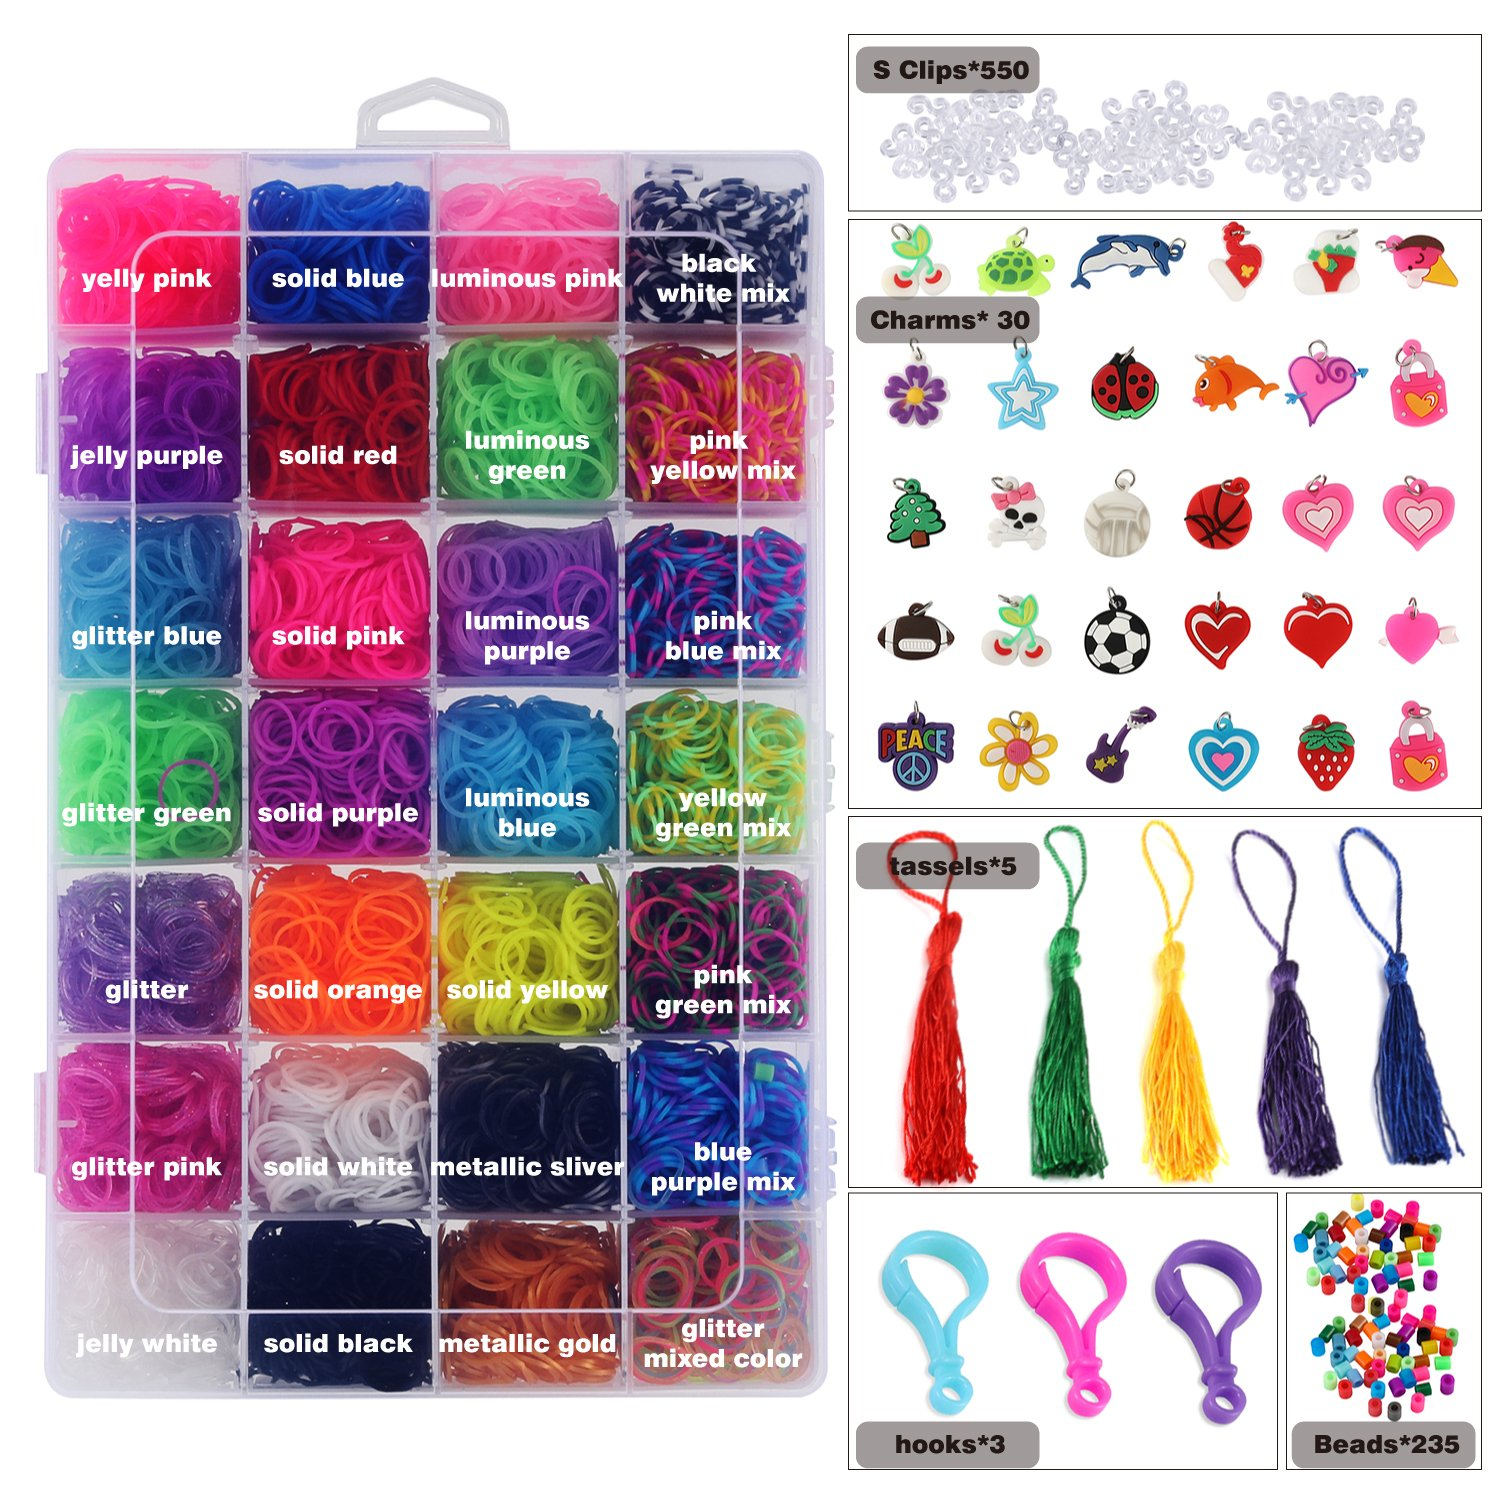 Glonova 11800+ Rubber Bands Refill Loom Kit Organizer for Kids Bracelet Weaving DIY Crafting, Includes 11050 Rubber Bands, 3 Backpack Hooks, 30 Charms, 235 Beads, 550 Clips, 5 Tassel, Organizer by Glonova (Image #1)